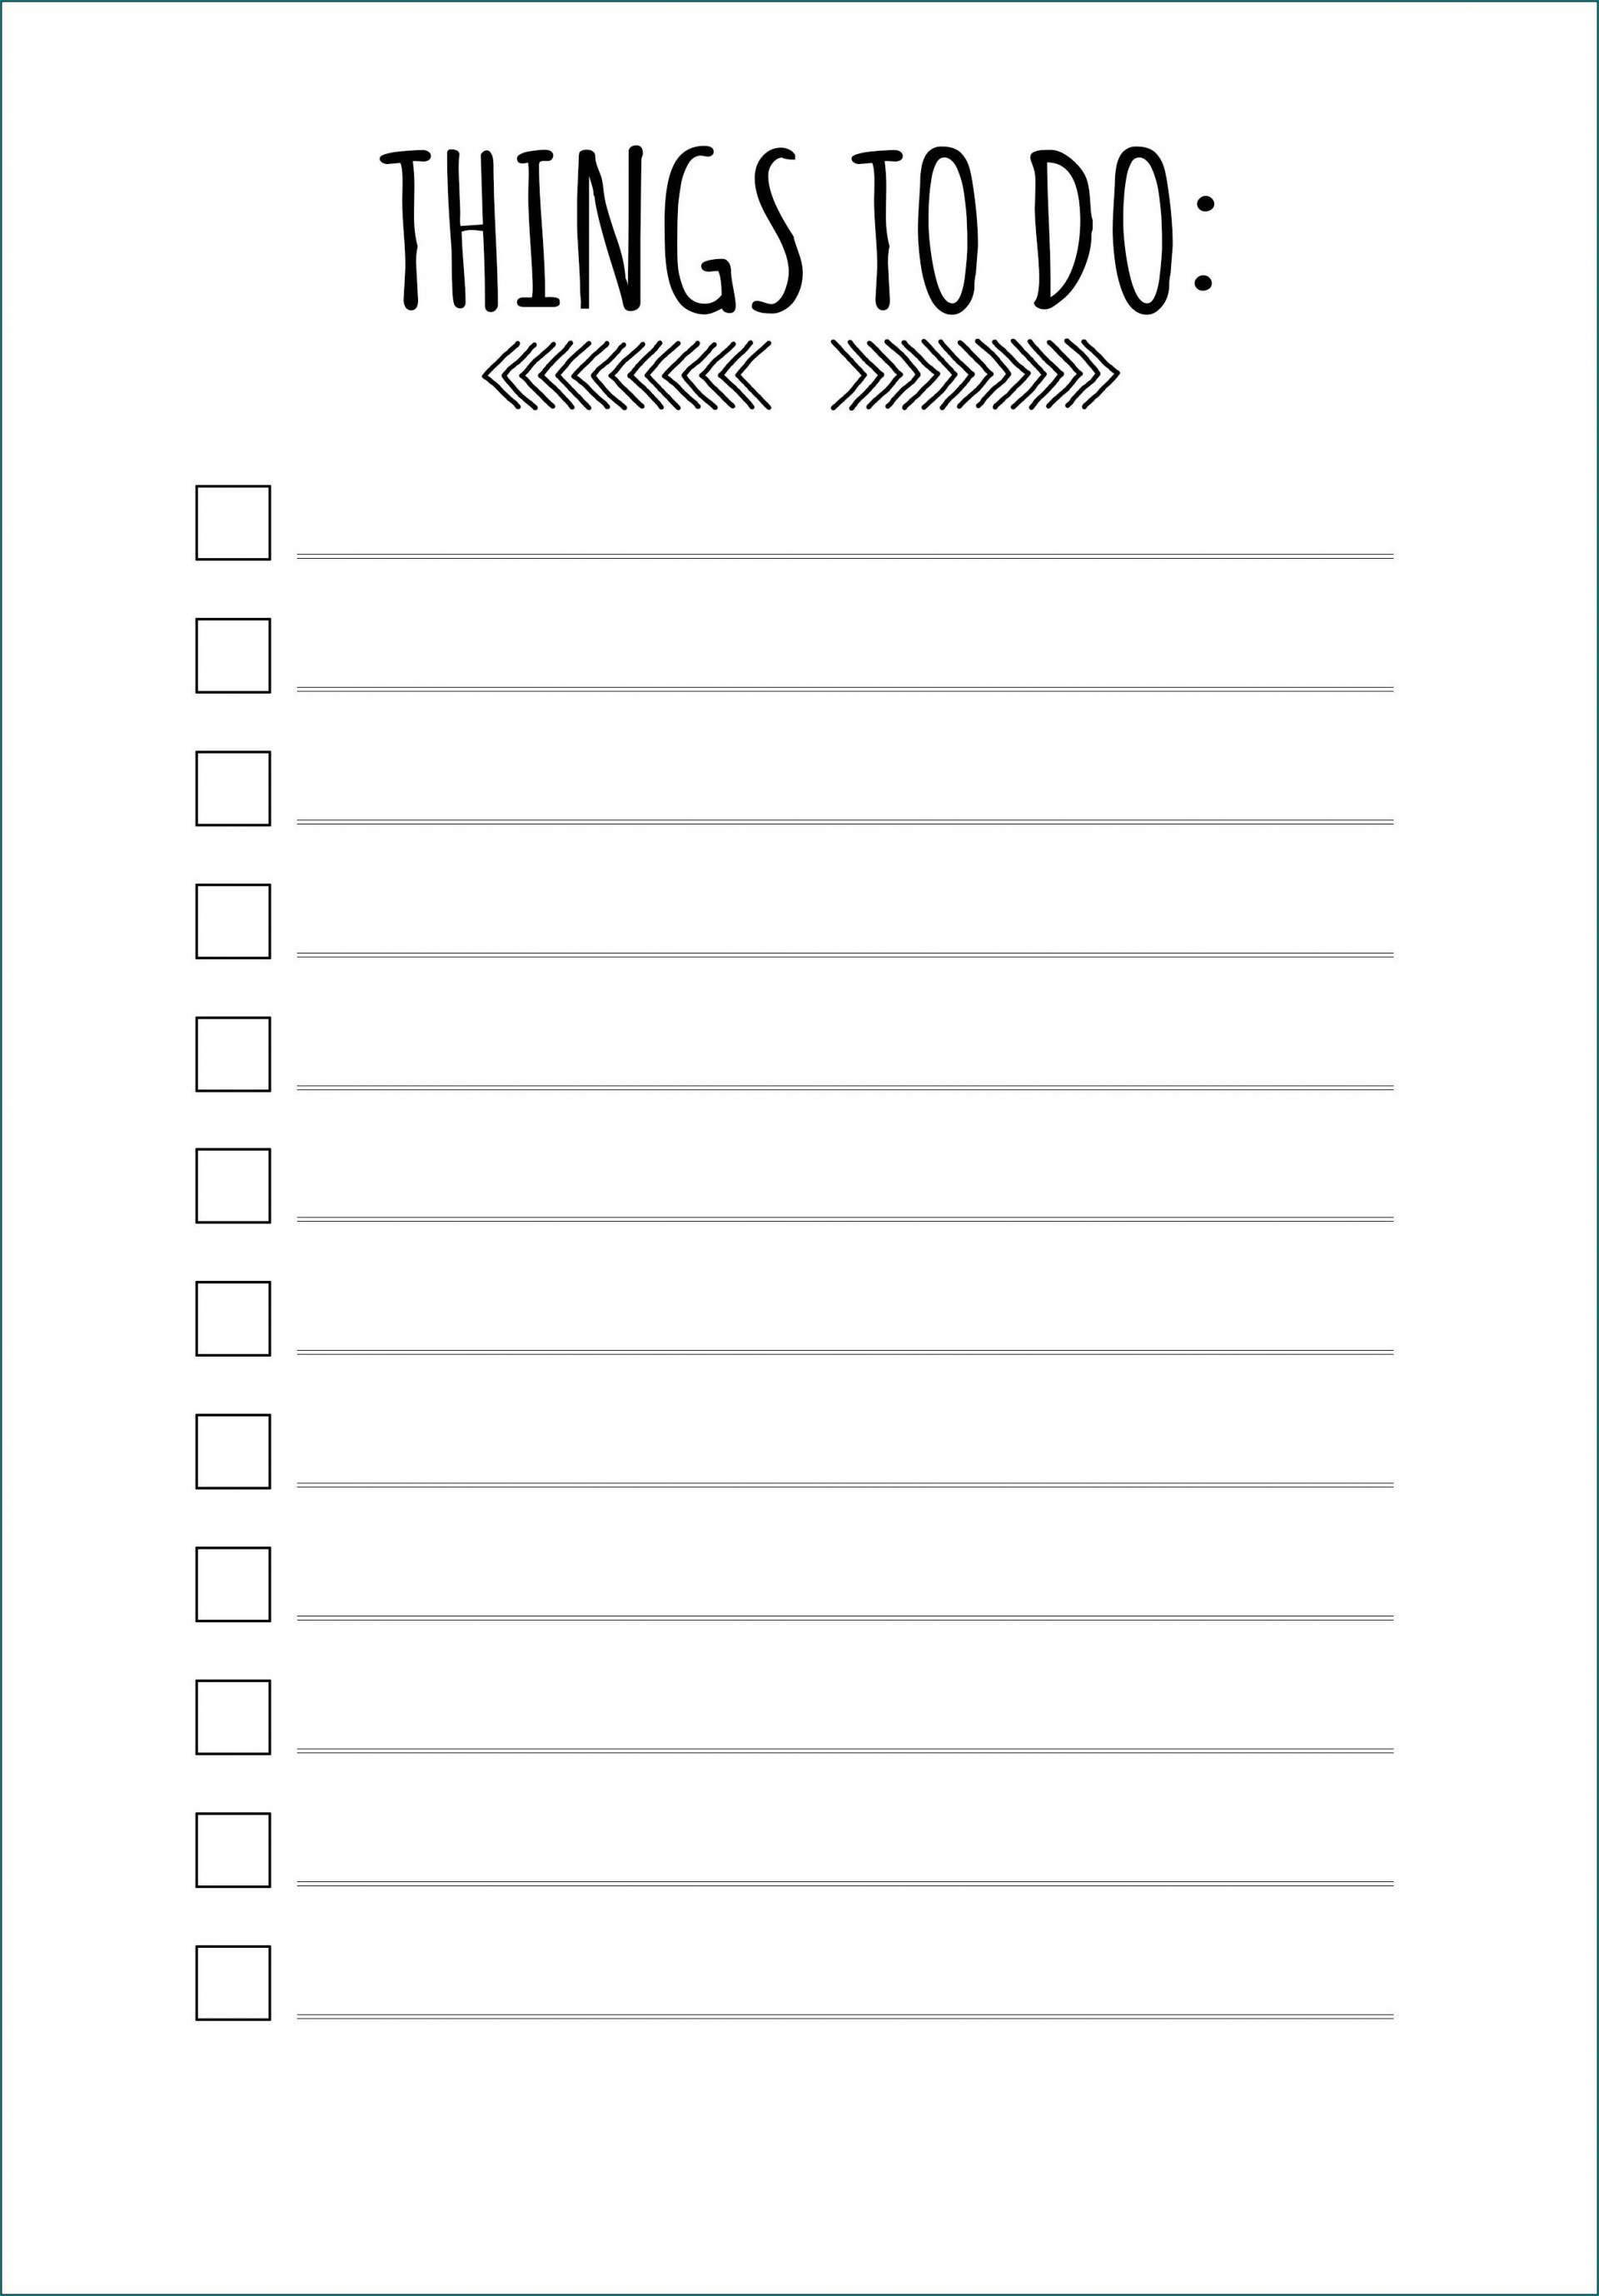 005 Fascinating Thing To Do List Template Sample 1920